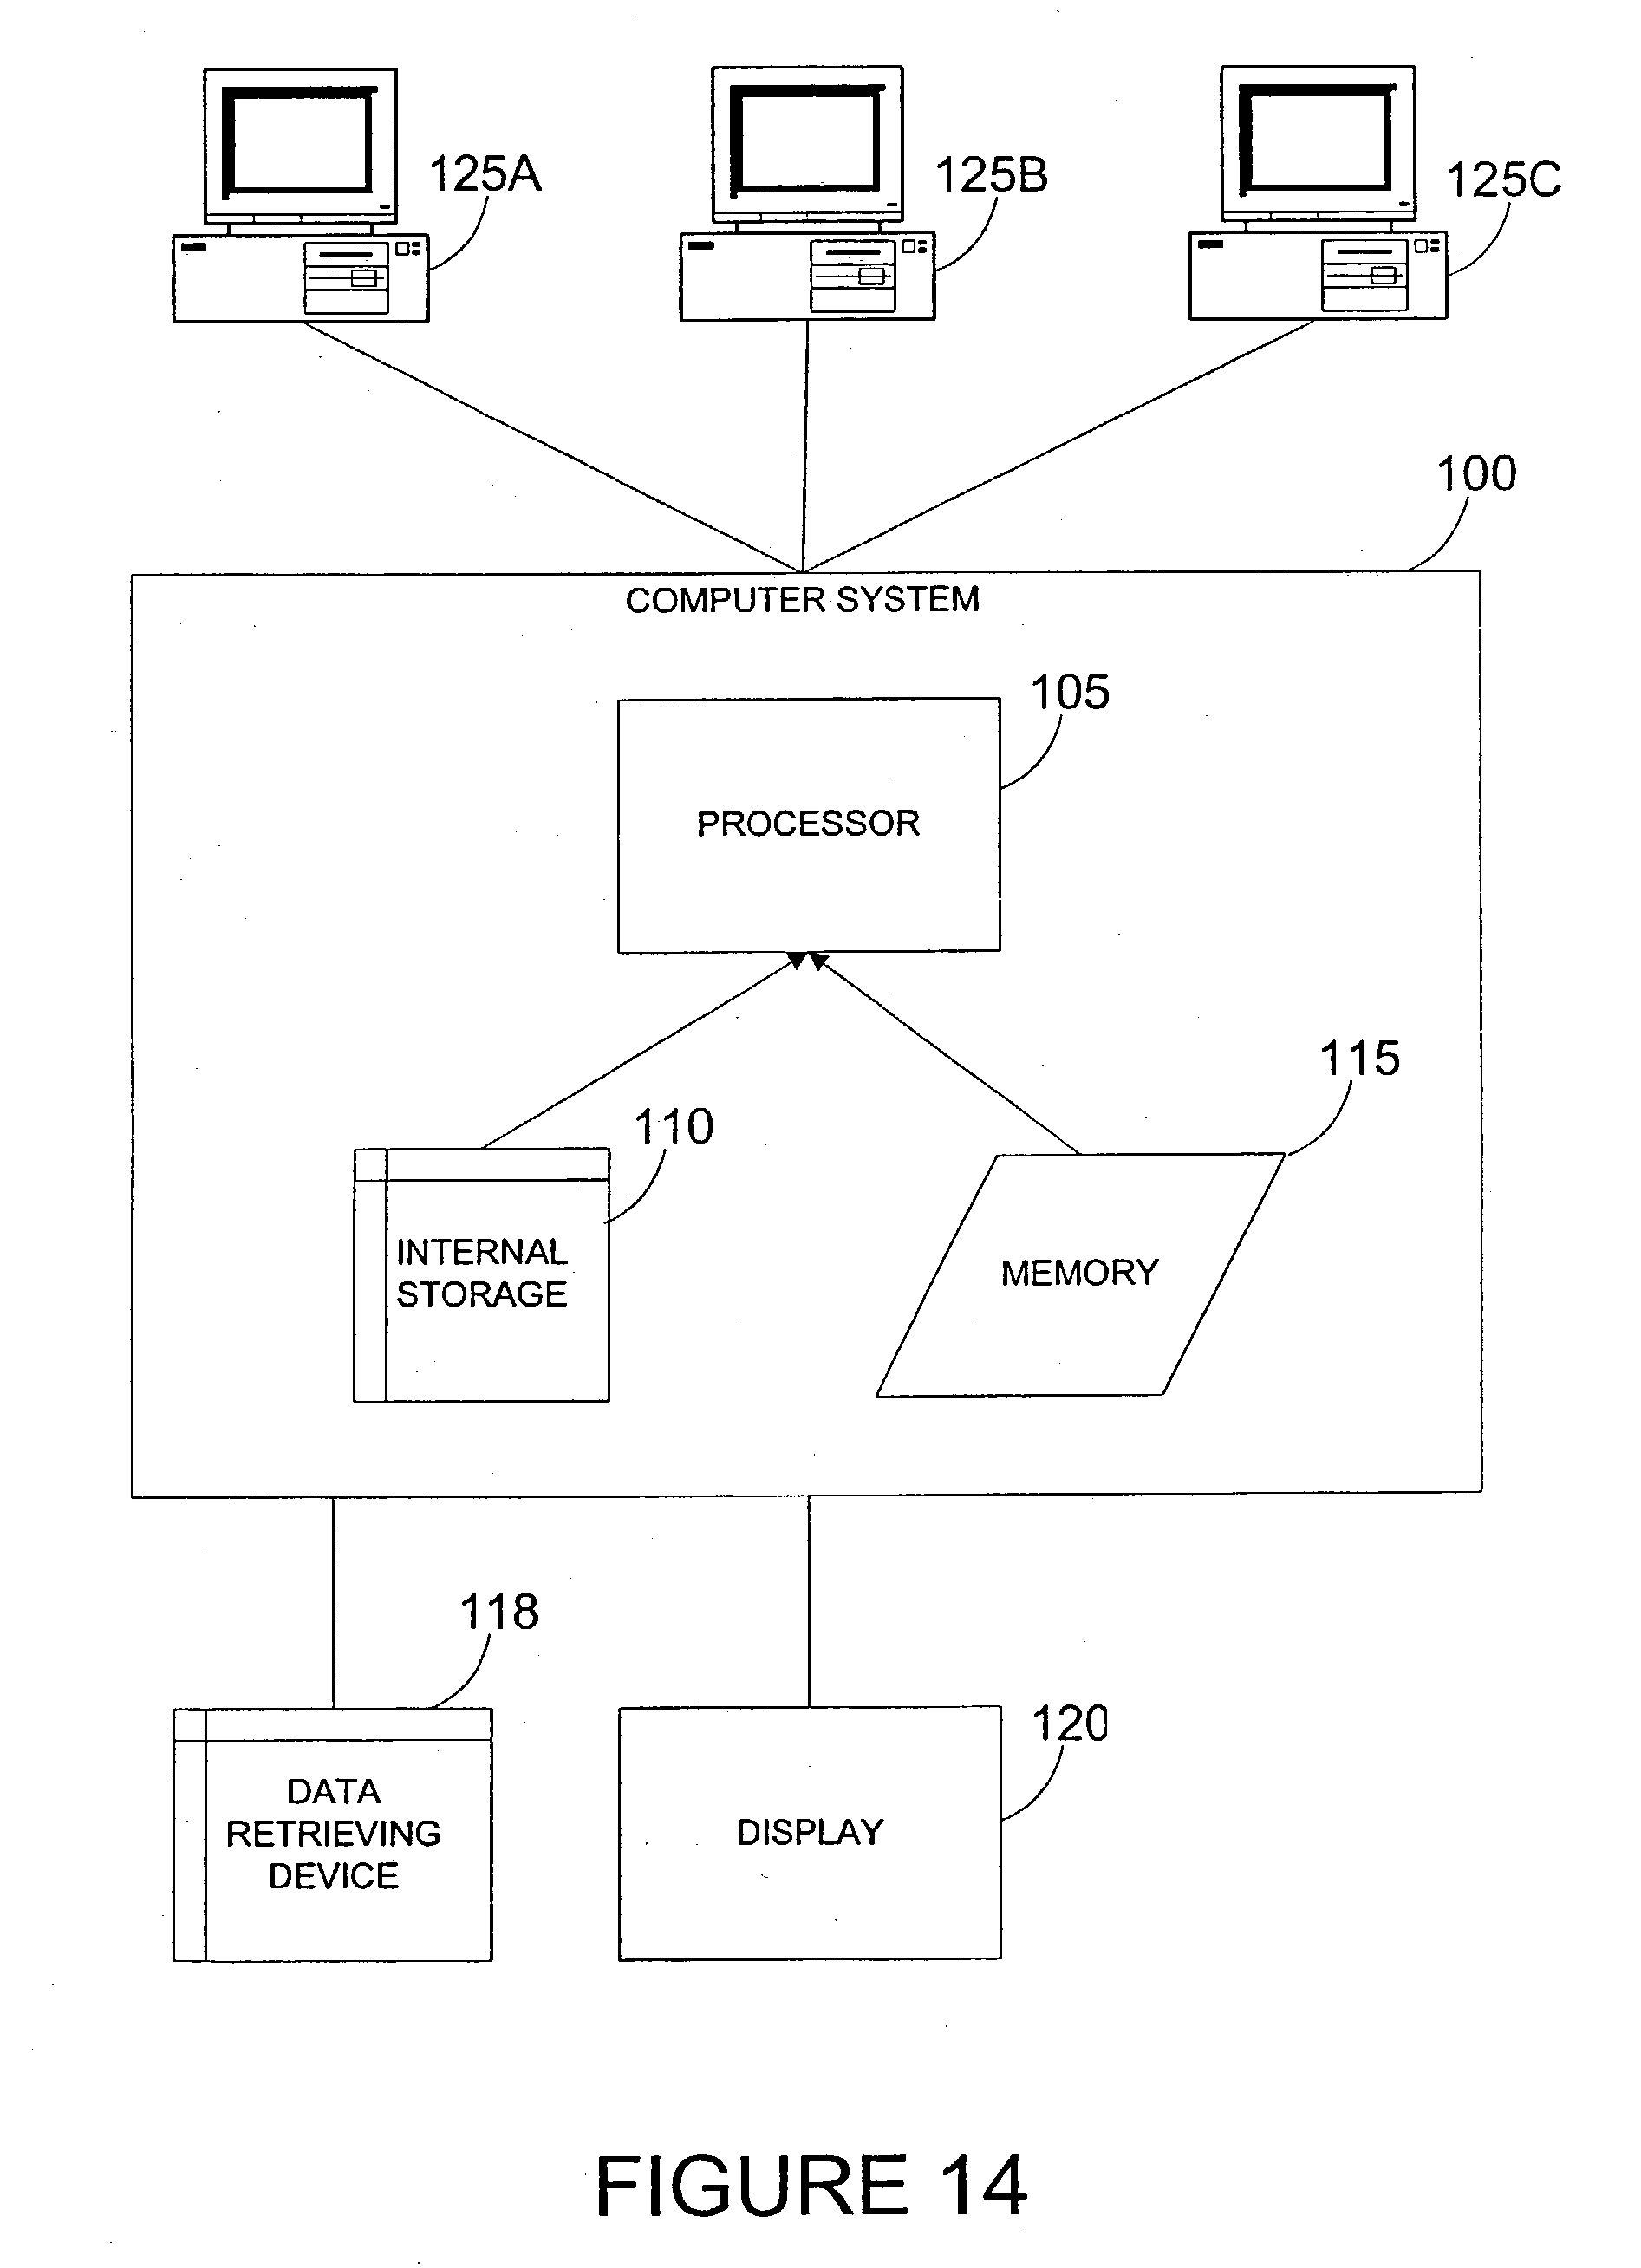 us20040005584a1 biallelic markers for use in constructing a highus20040005584a1 biallelic markers for use in constructing a high density disequilibrium map of the human genome google patents